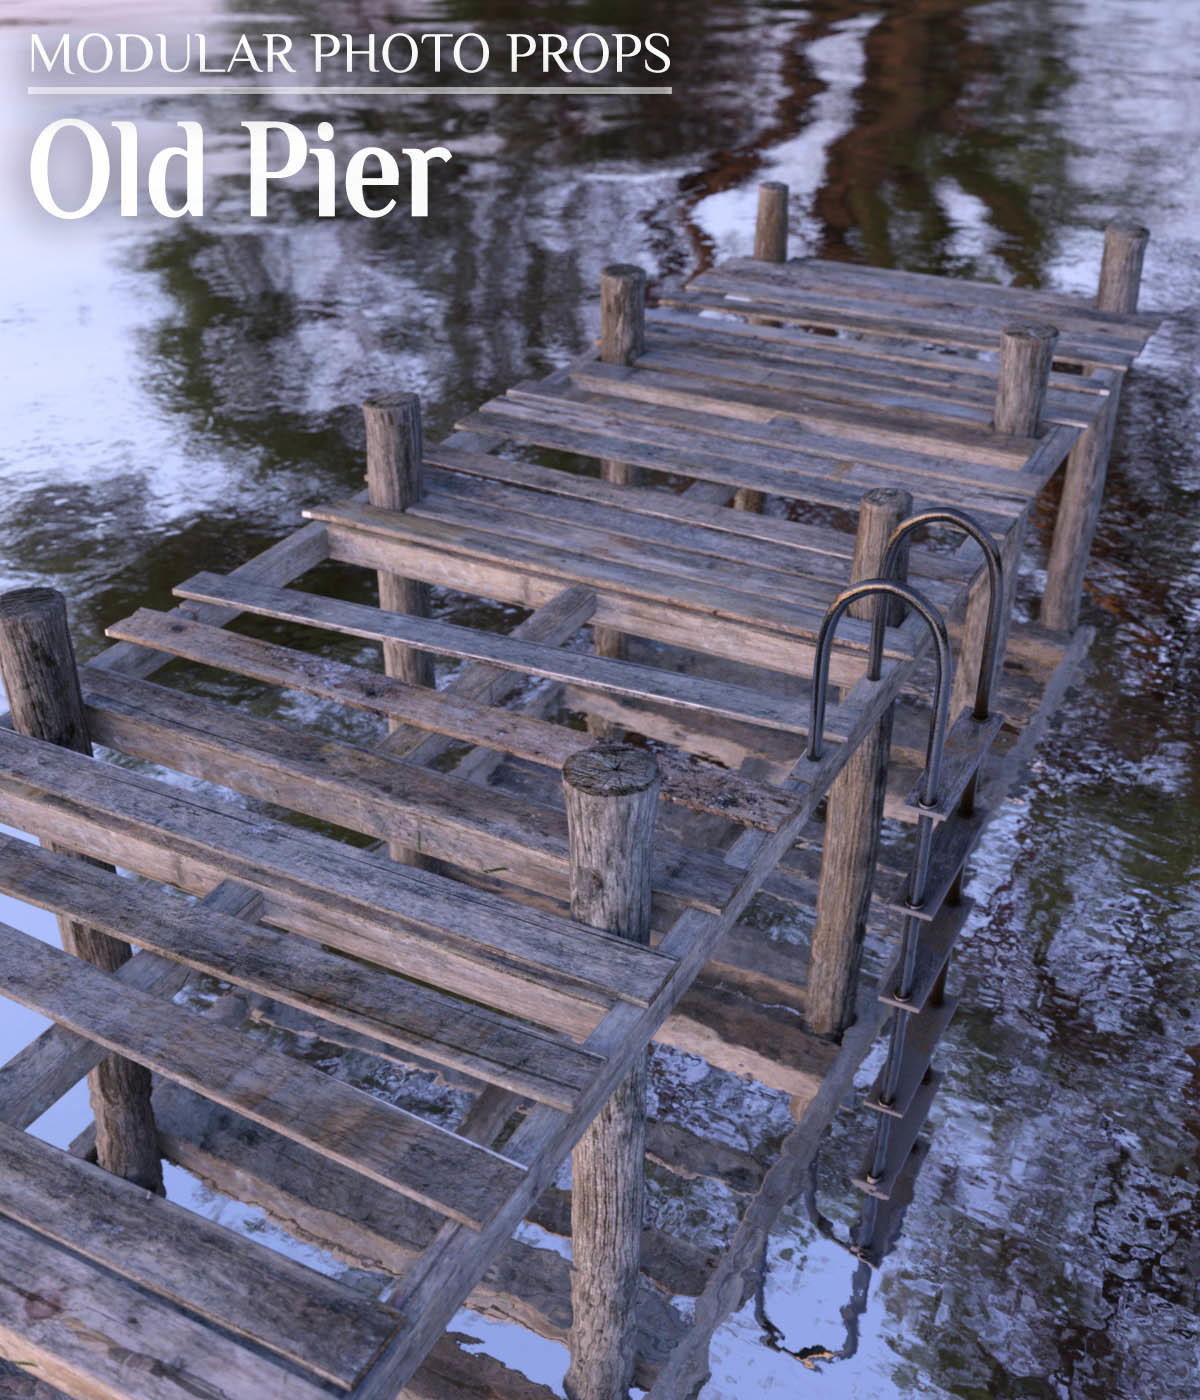 Modular Photo Props: Old Pier - Extended License by ShaaraMuse3D